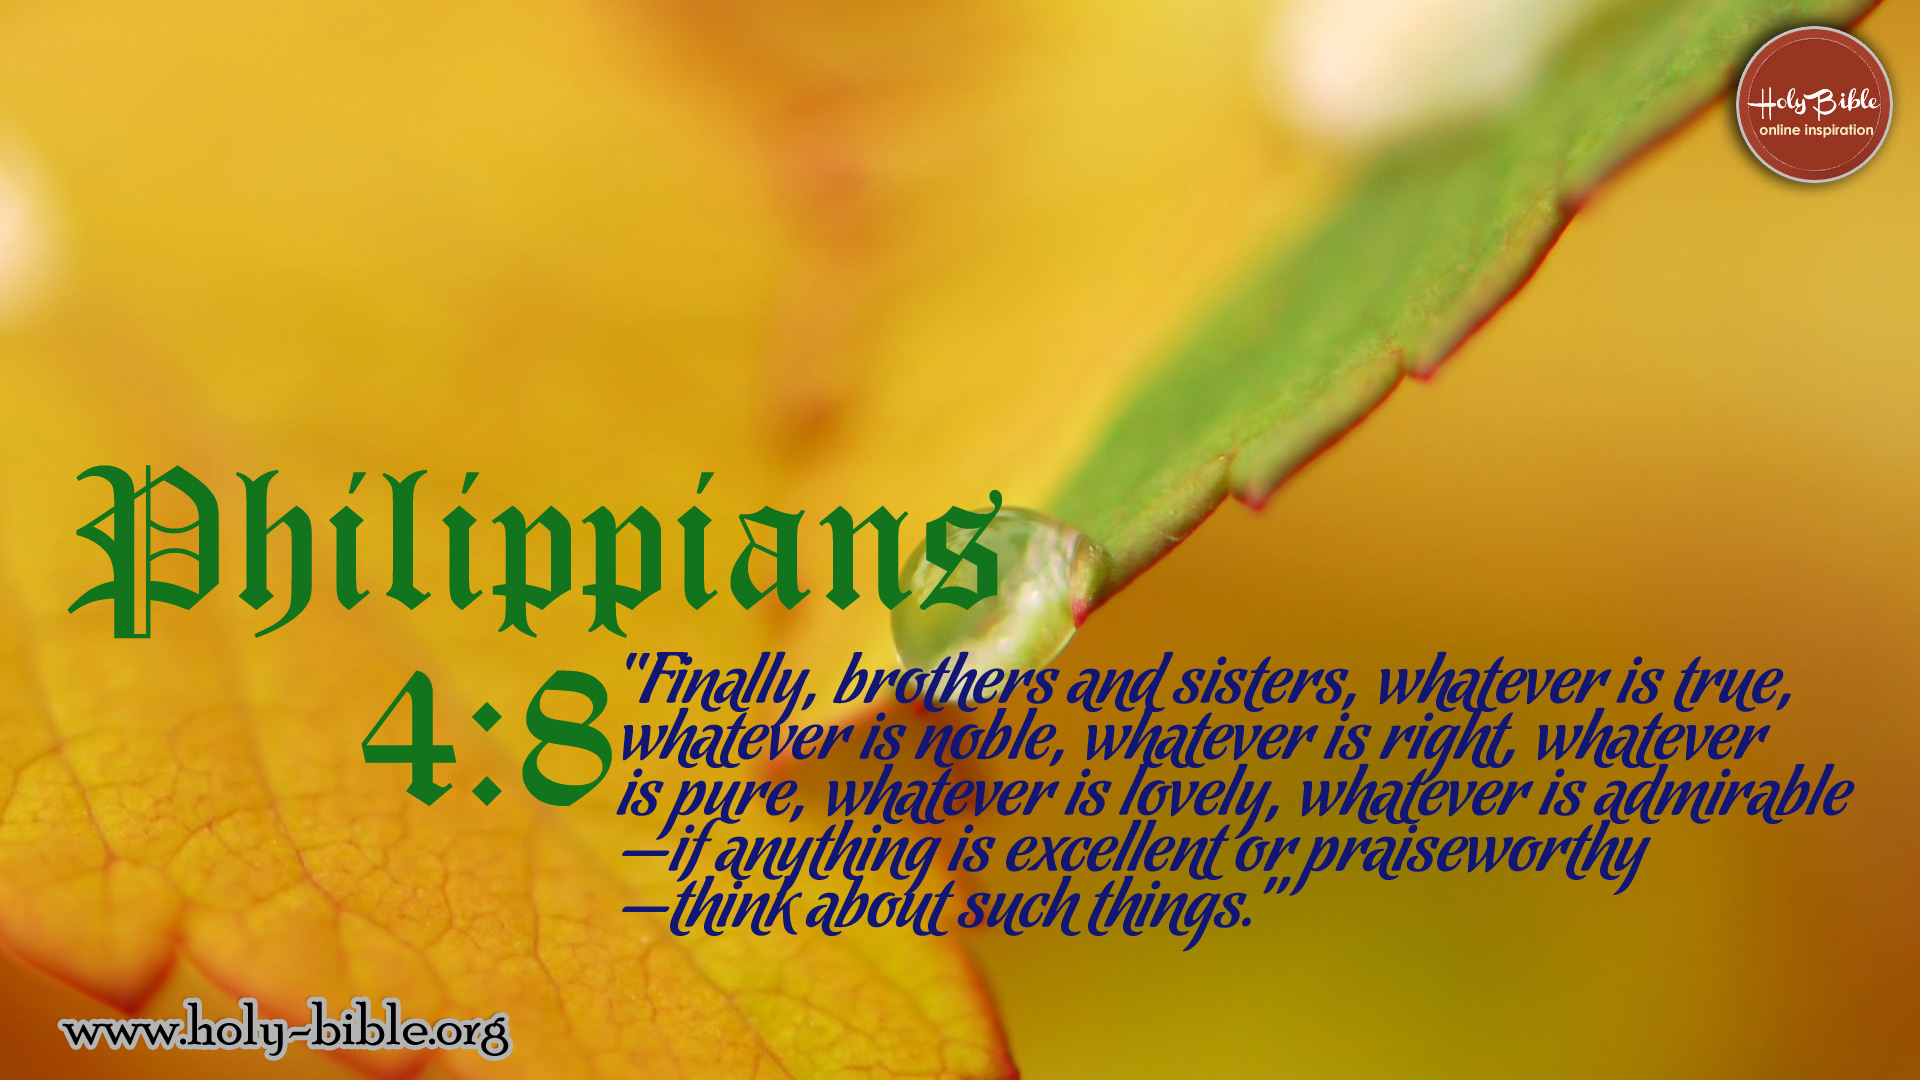 Bible Verse of the day - Philippians 4:8